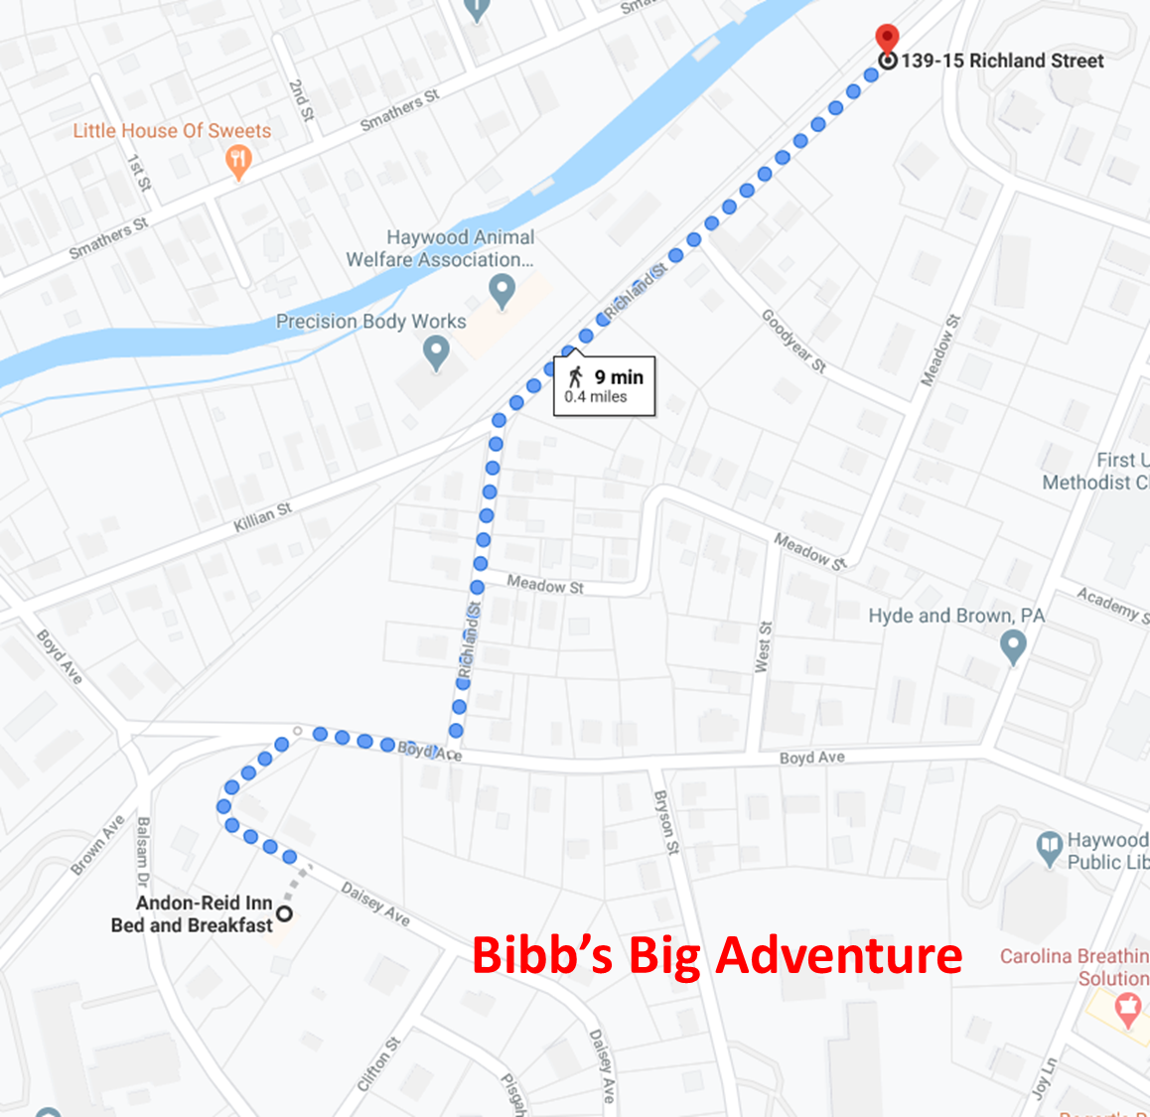 A map of Bibb's Journey